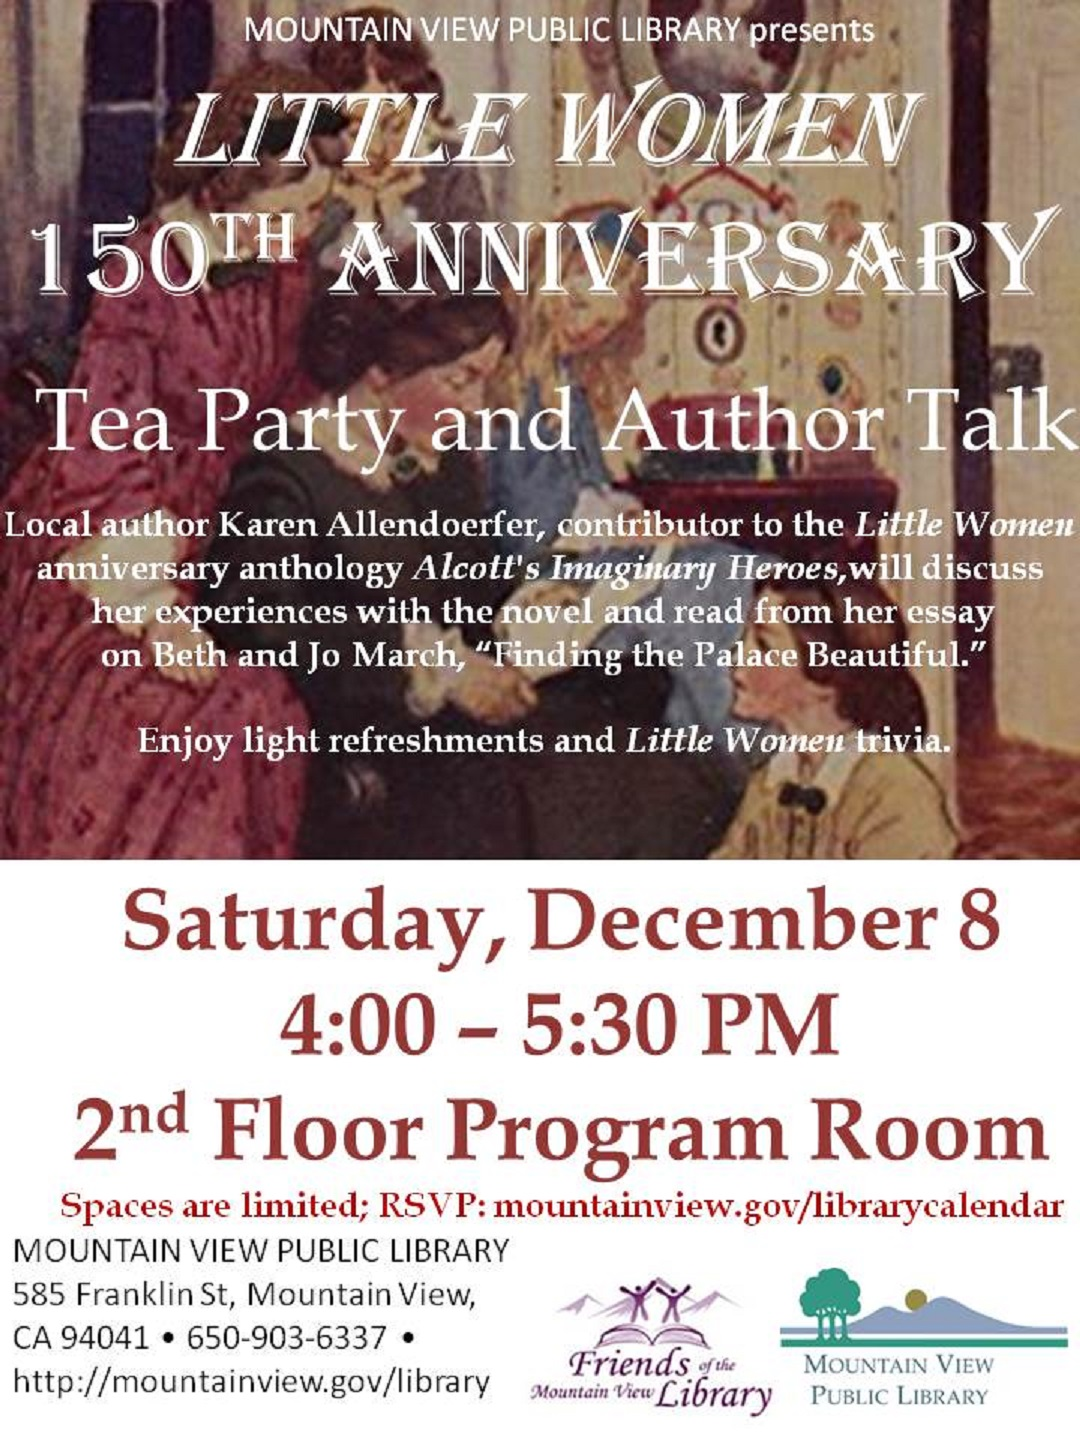 Little Women 150th Anniversary: a Tea-Time Lecture